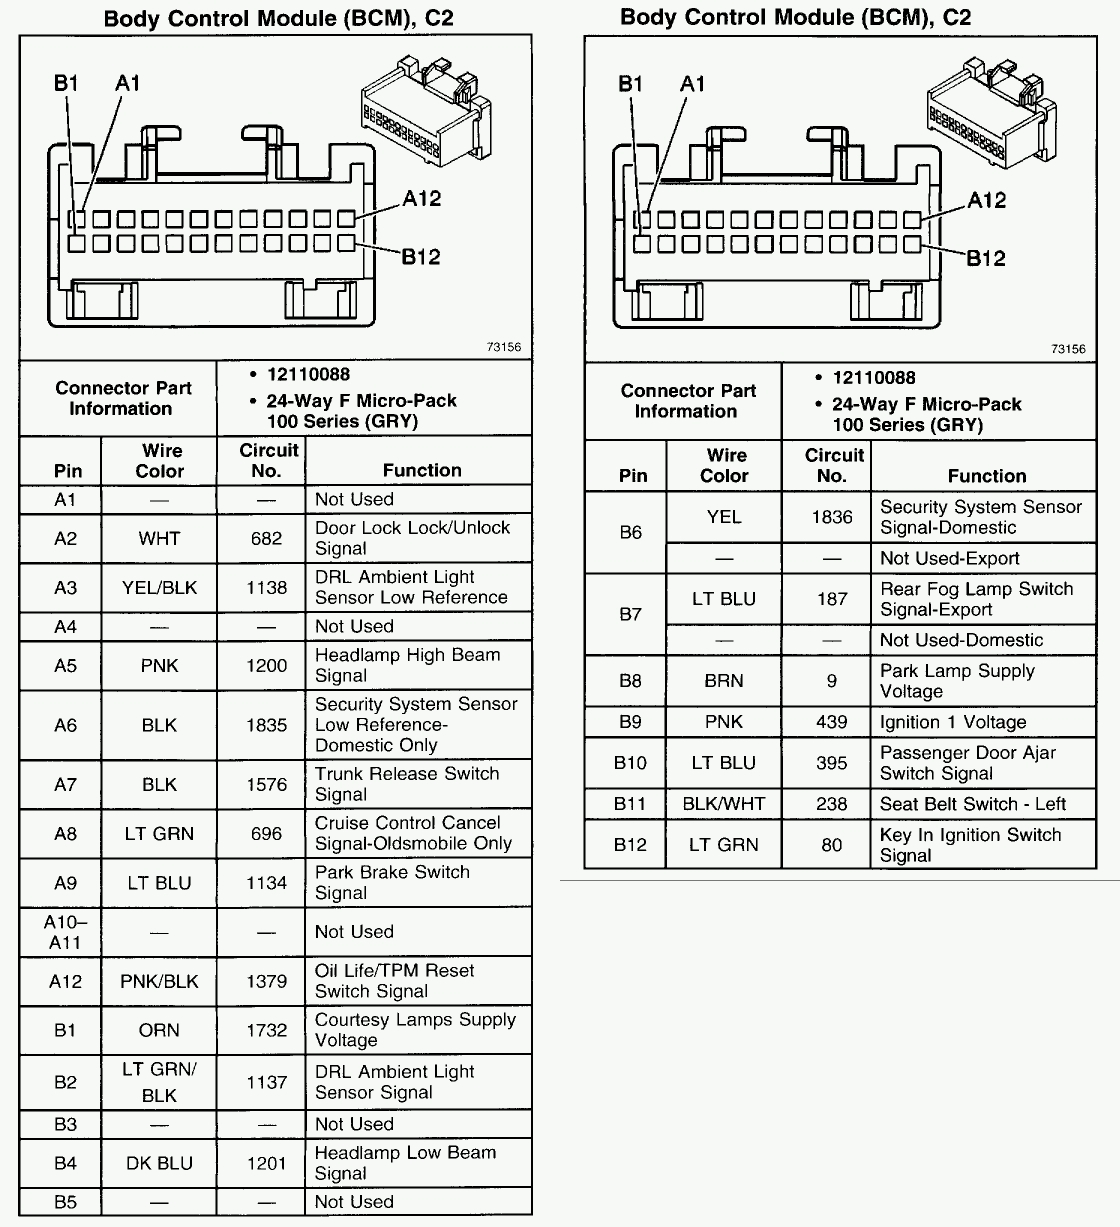 2004 pontiac vibe stereo wiring diagram fender strat seymour duncan grand prix parts automotive